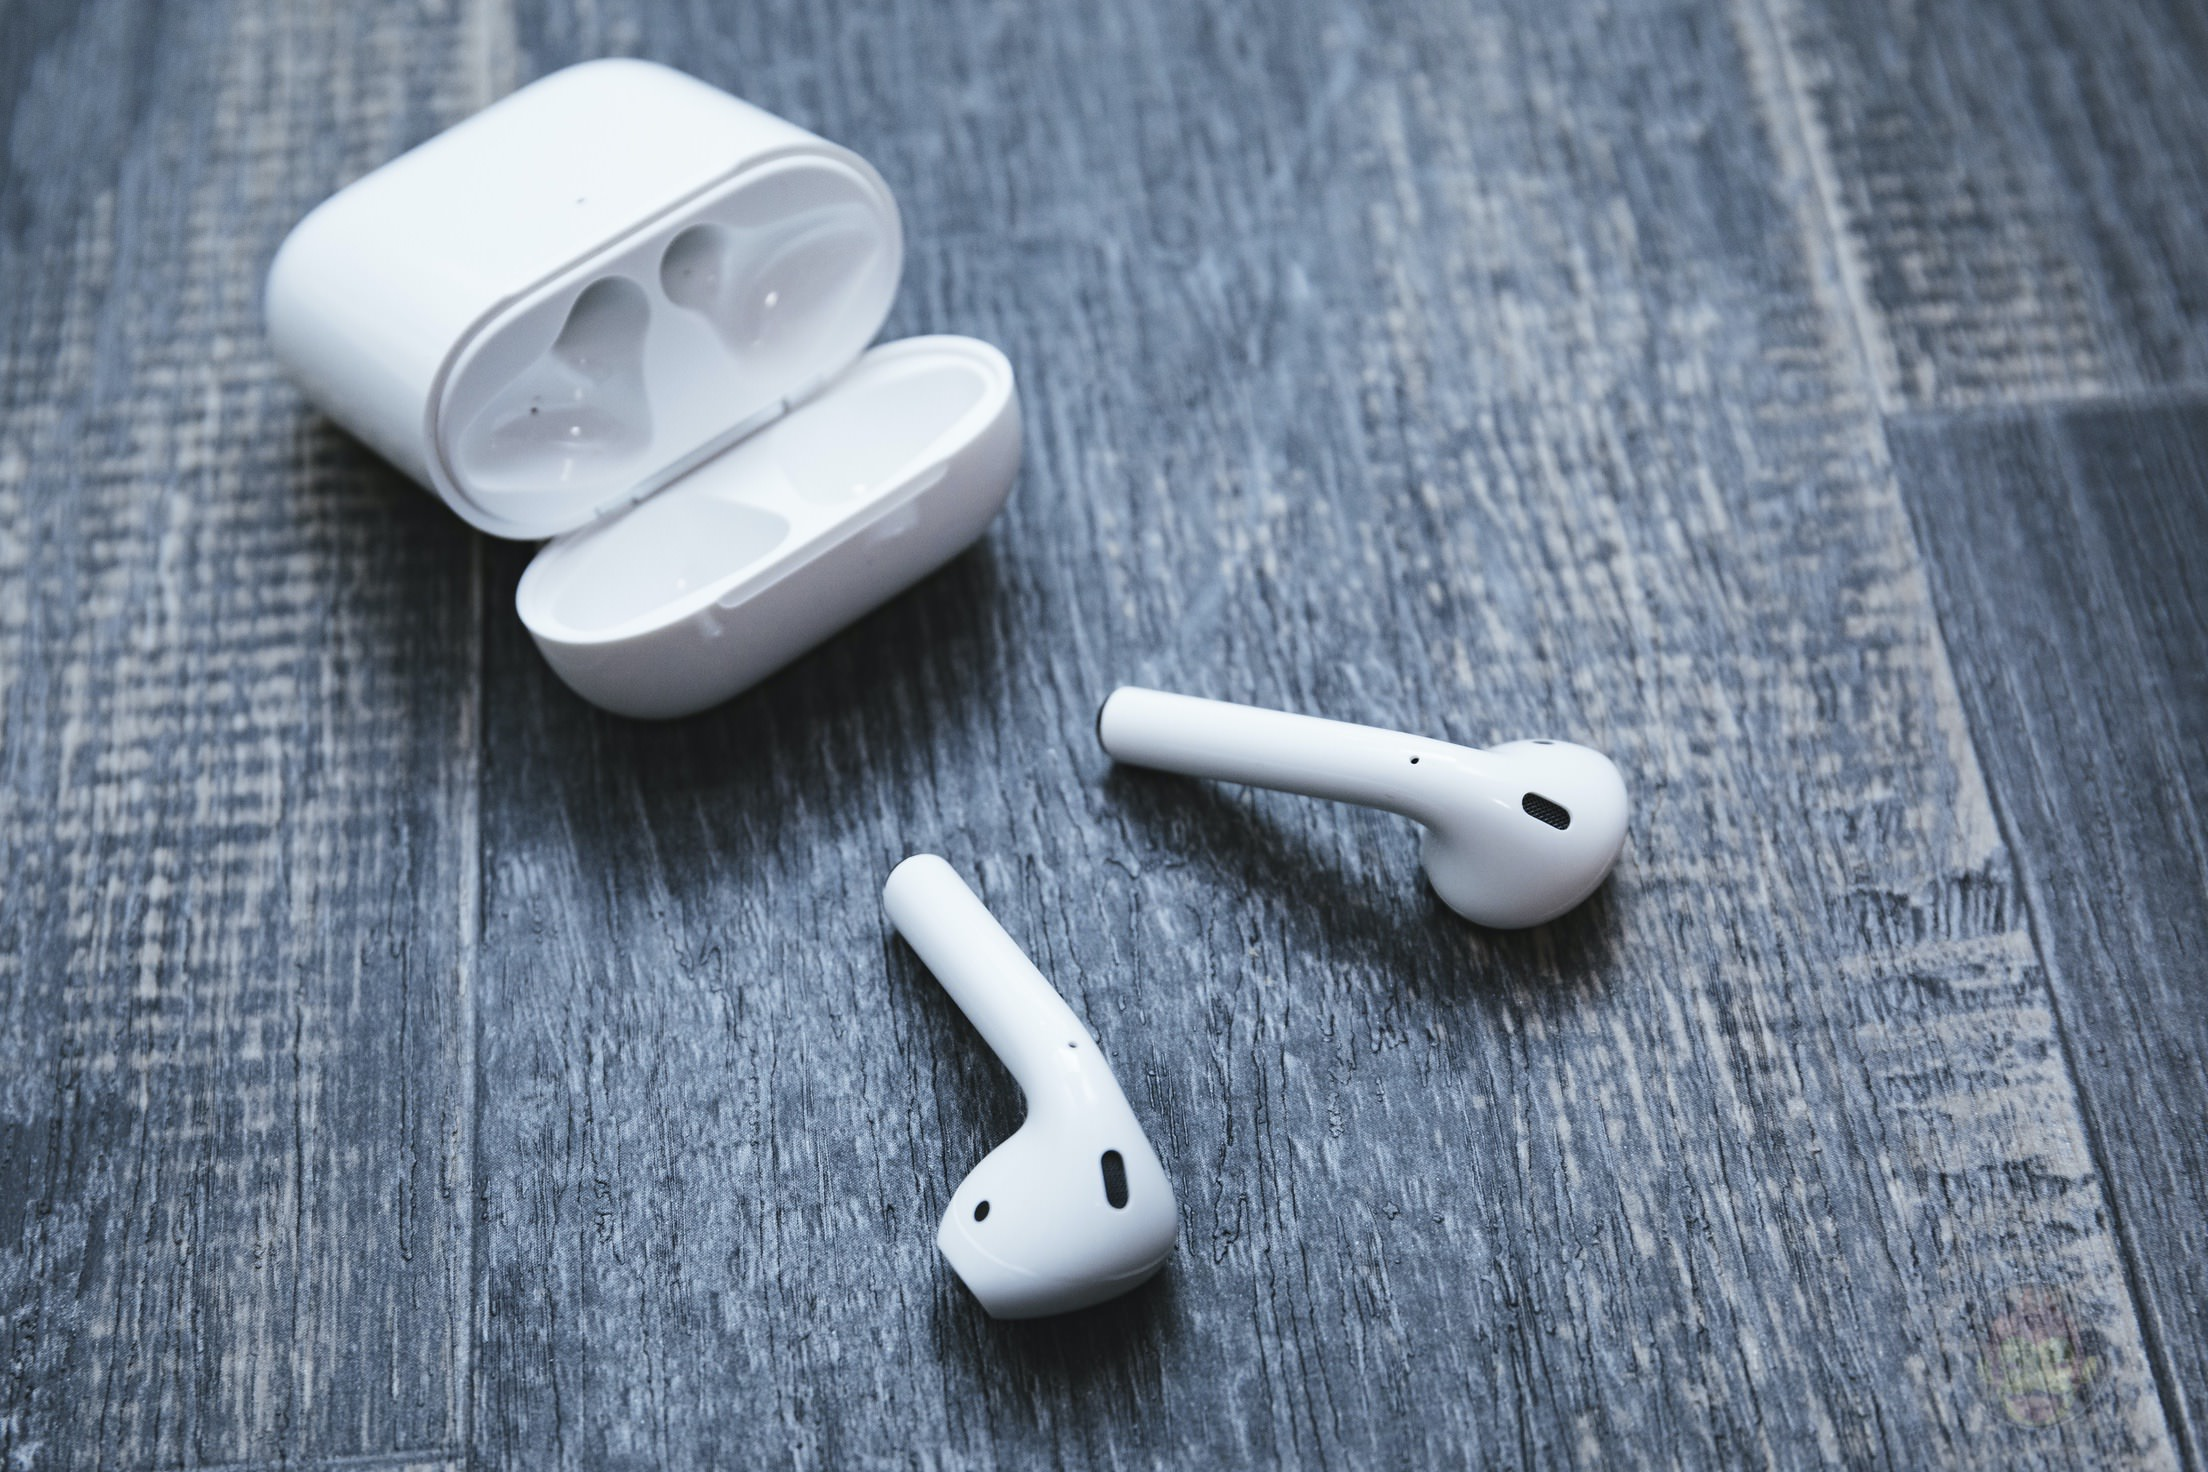 AirPods-2nd-Generation-2019-Review-15.jpg